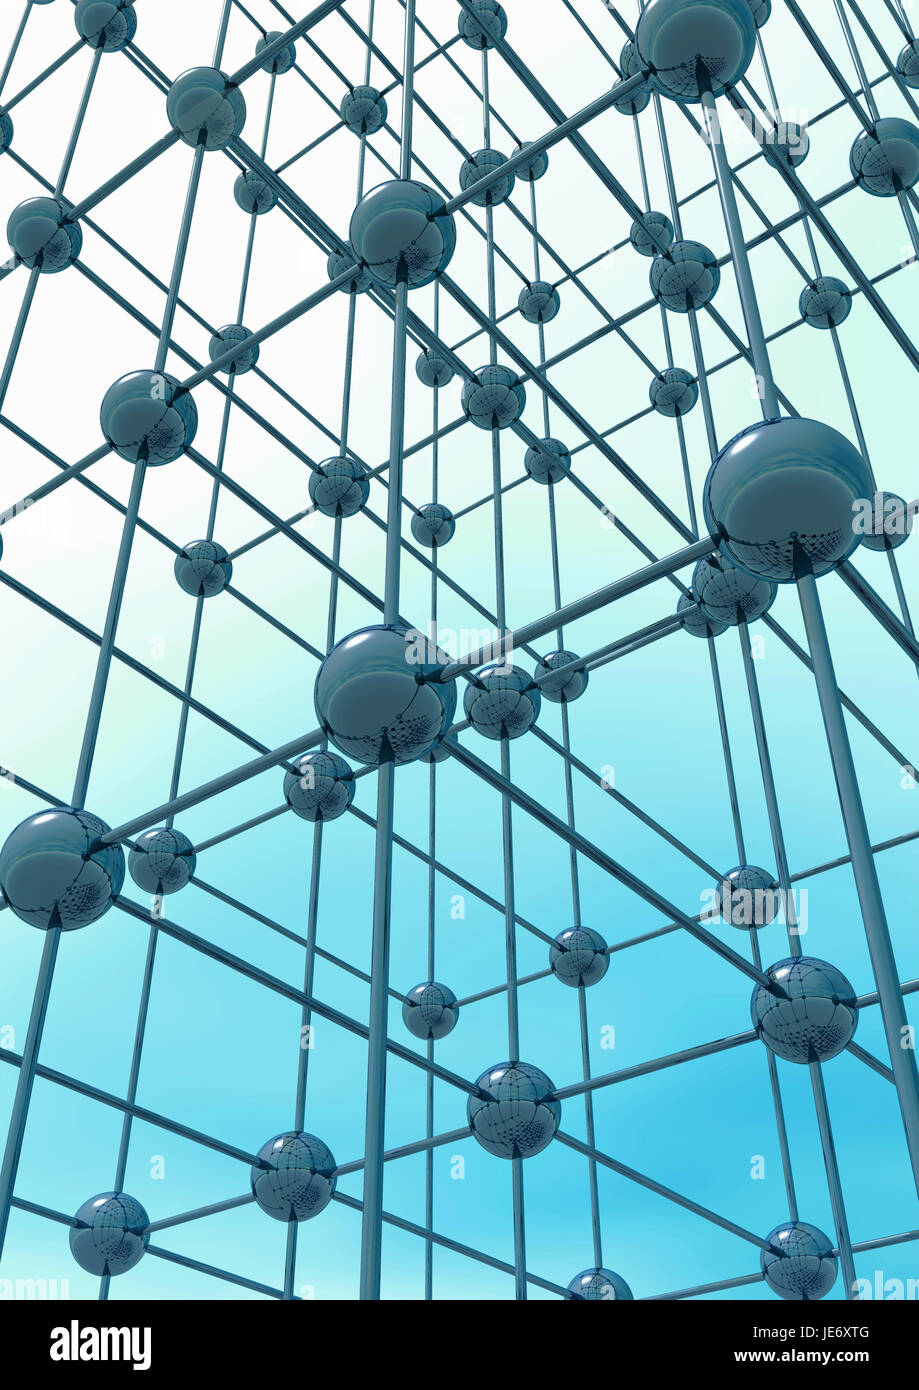 Network, structure, - Stock Image